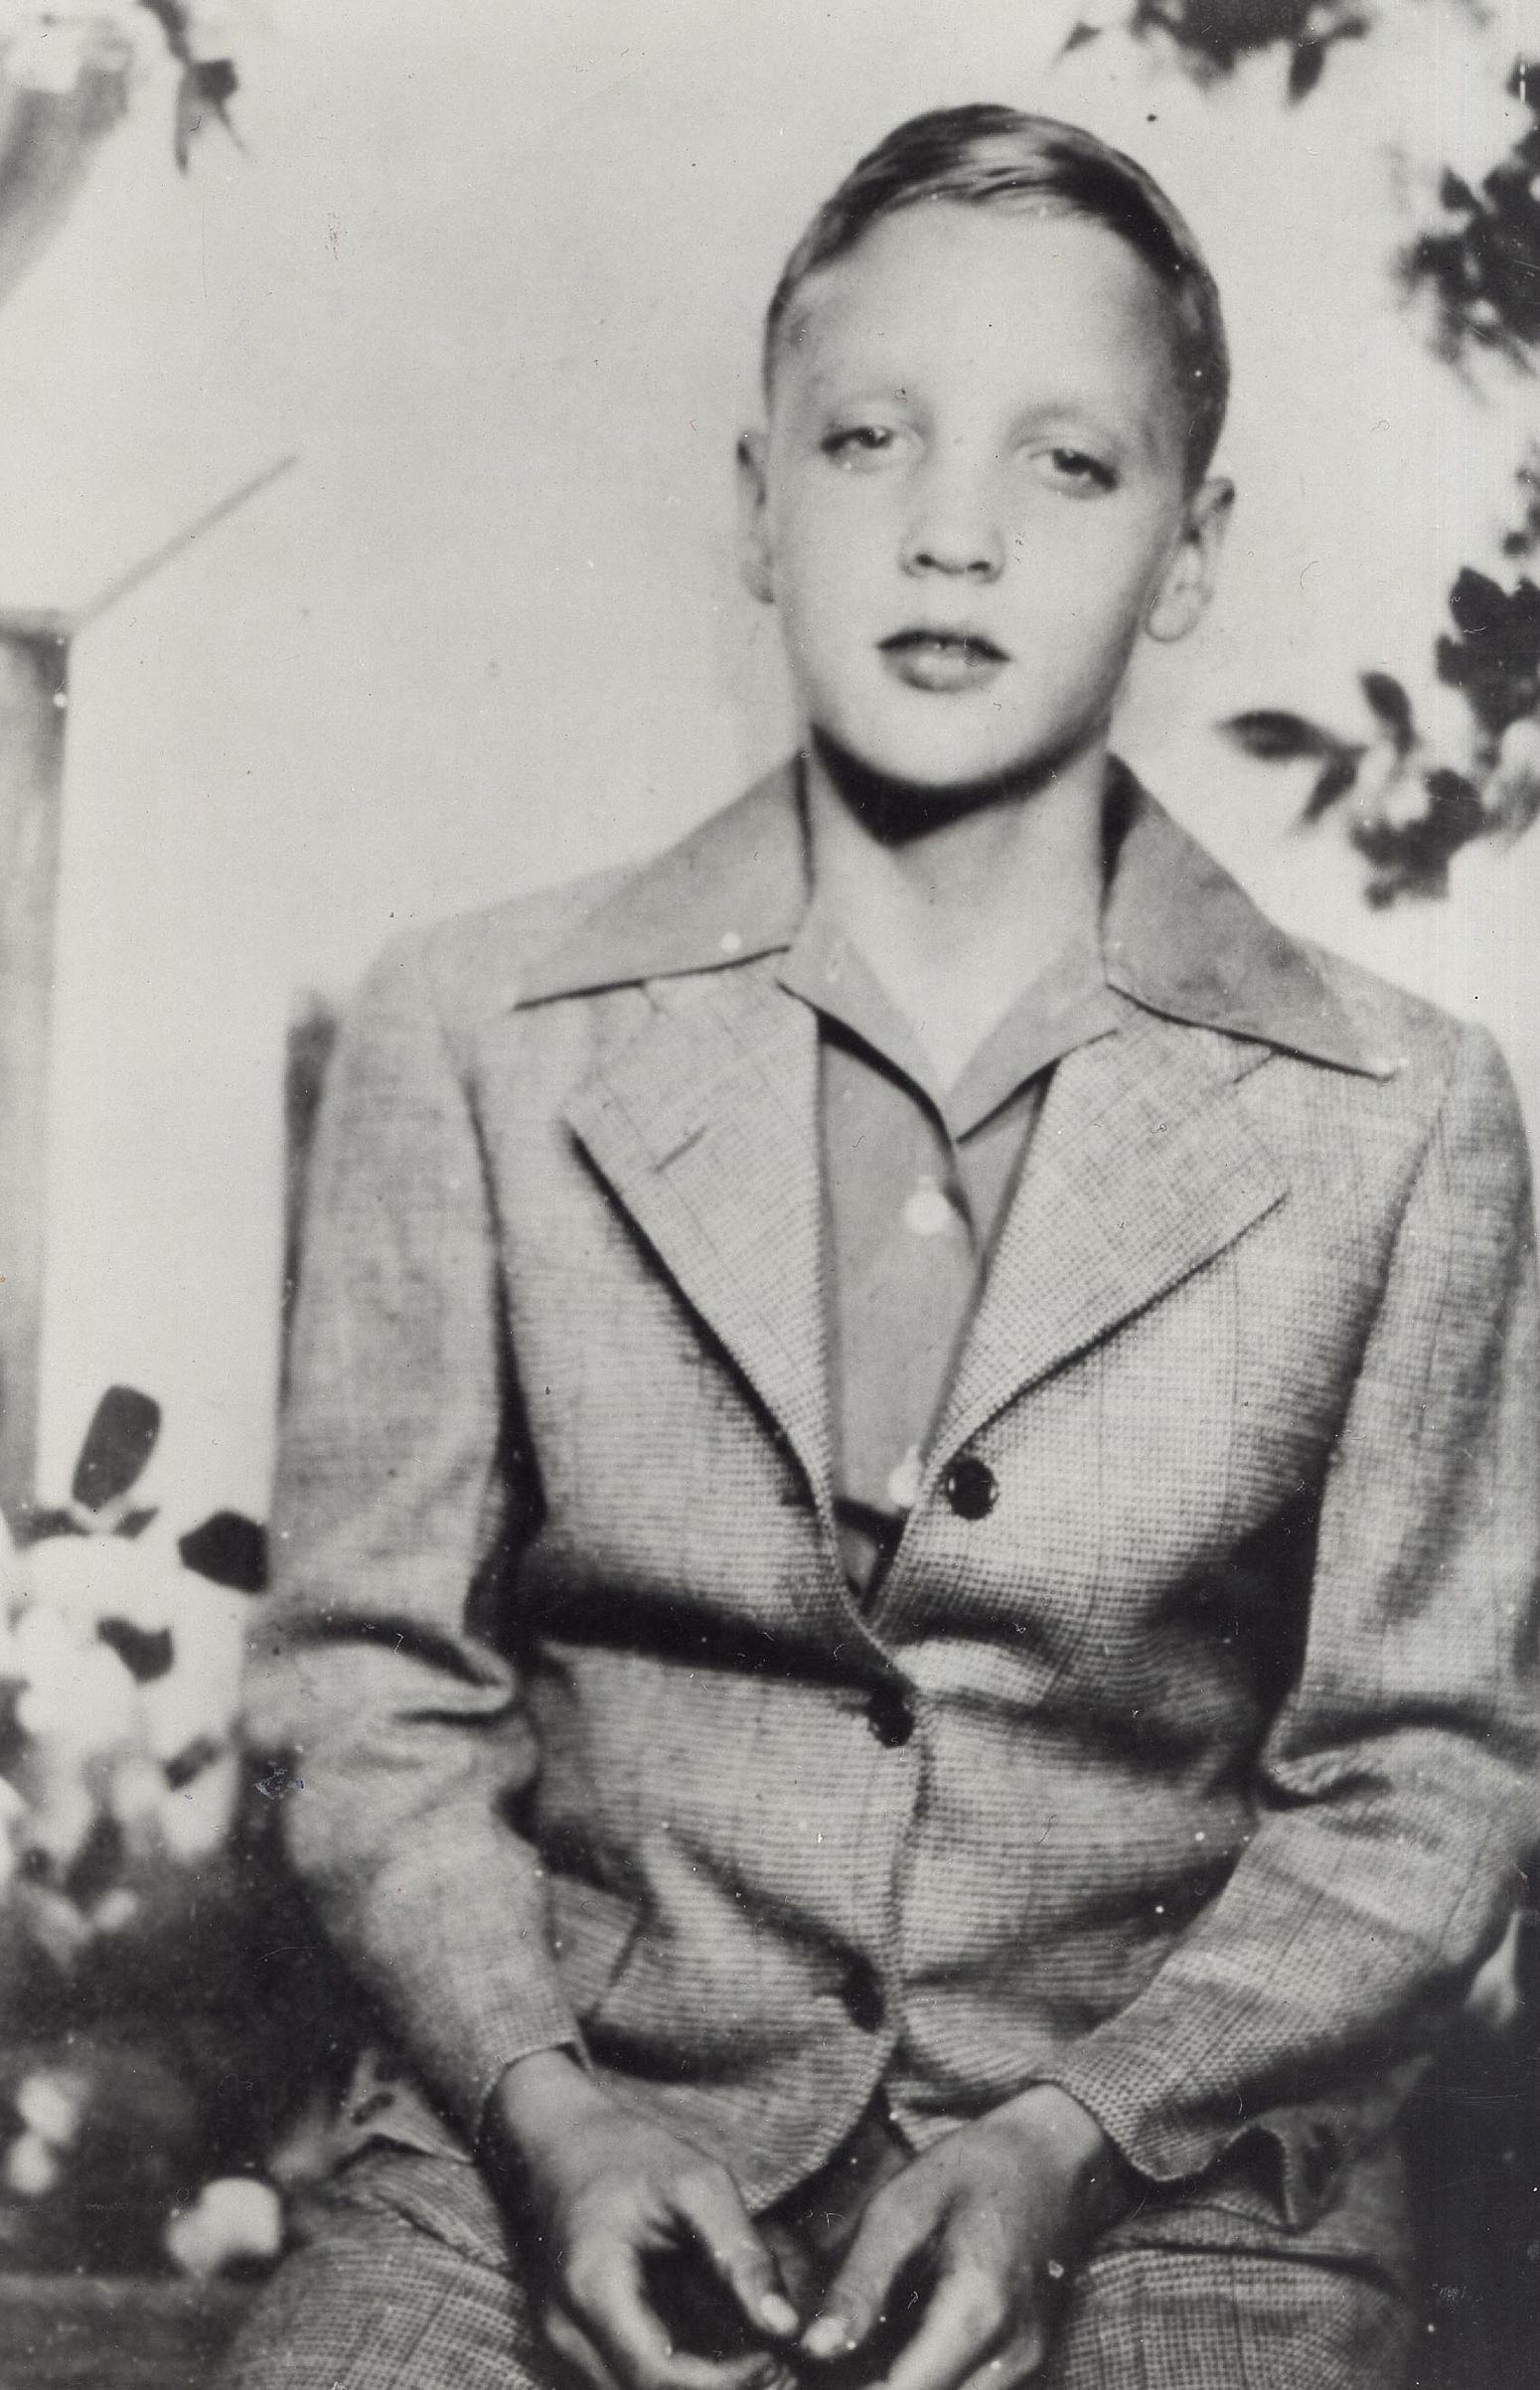 Elvis at approximately 12 years old.